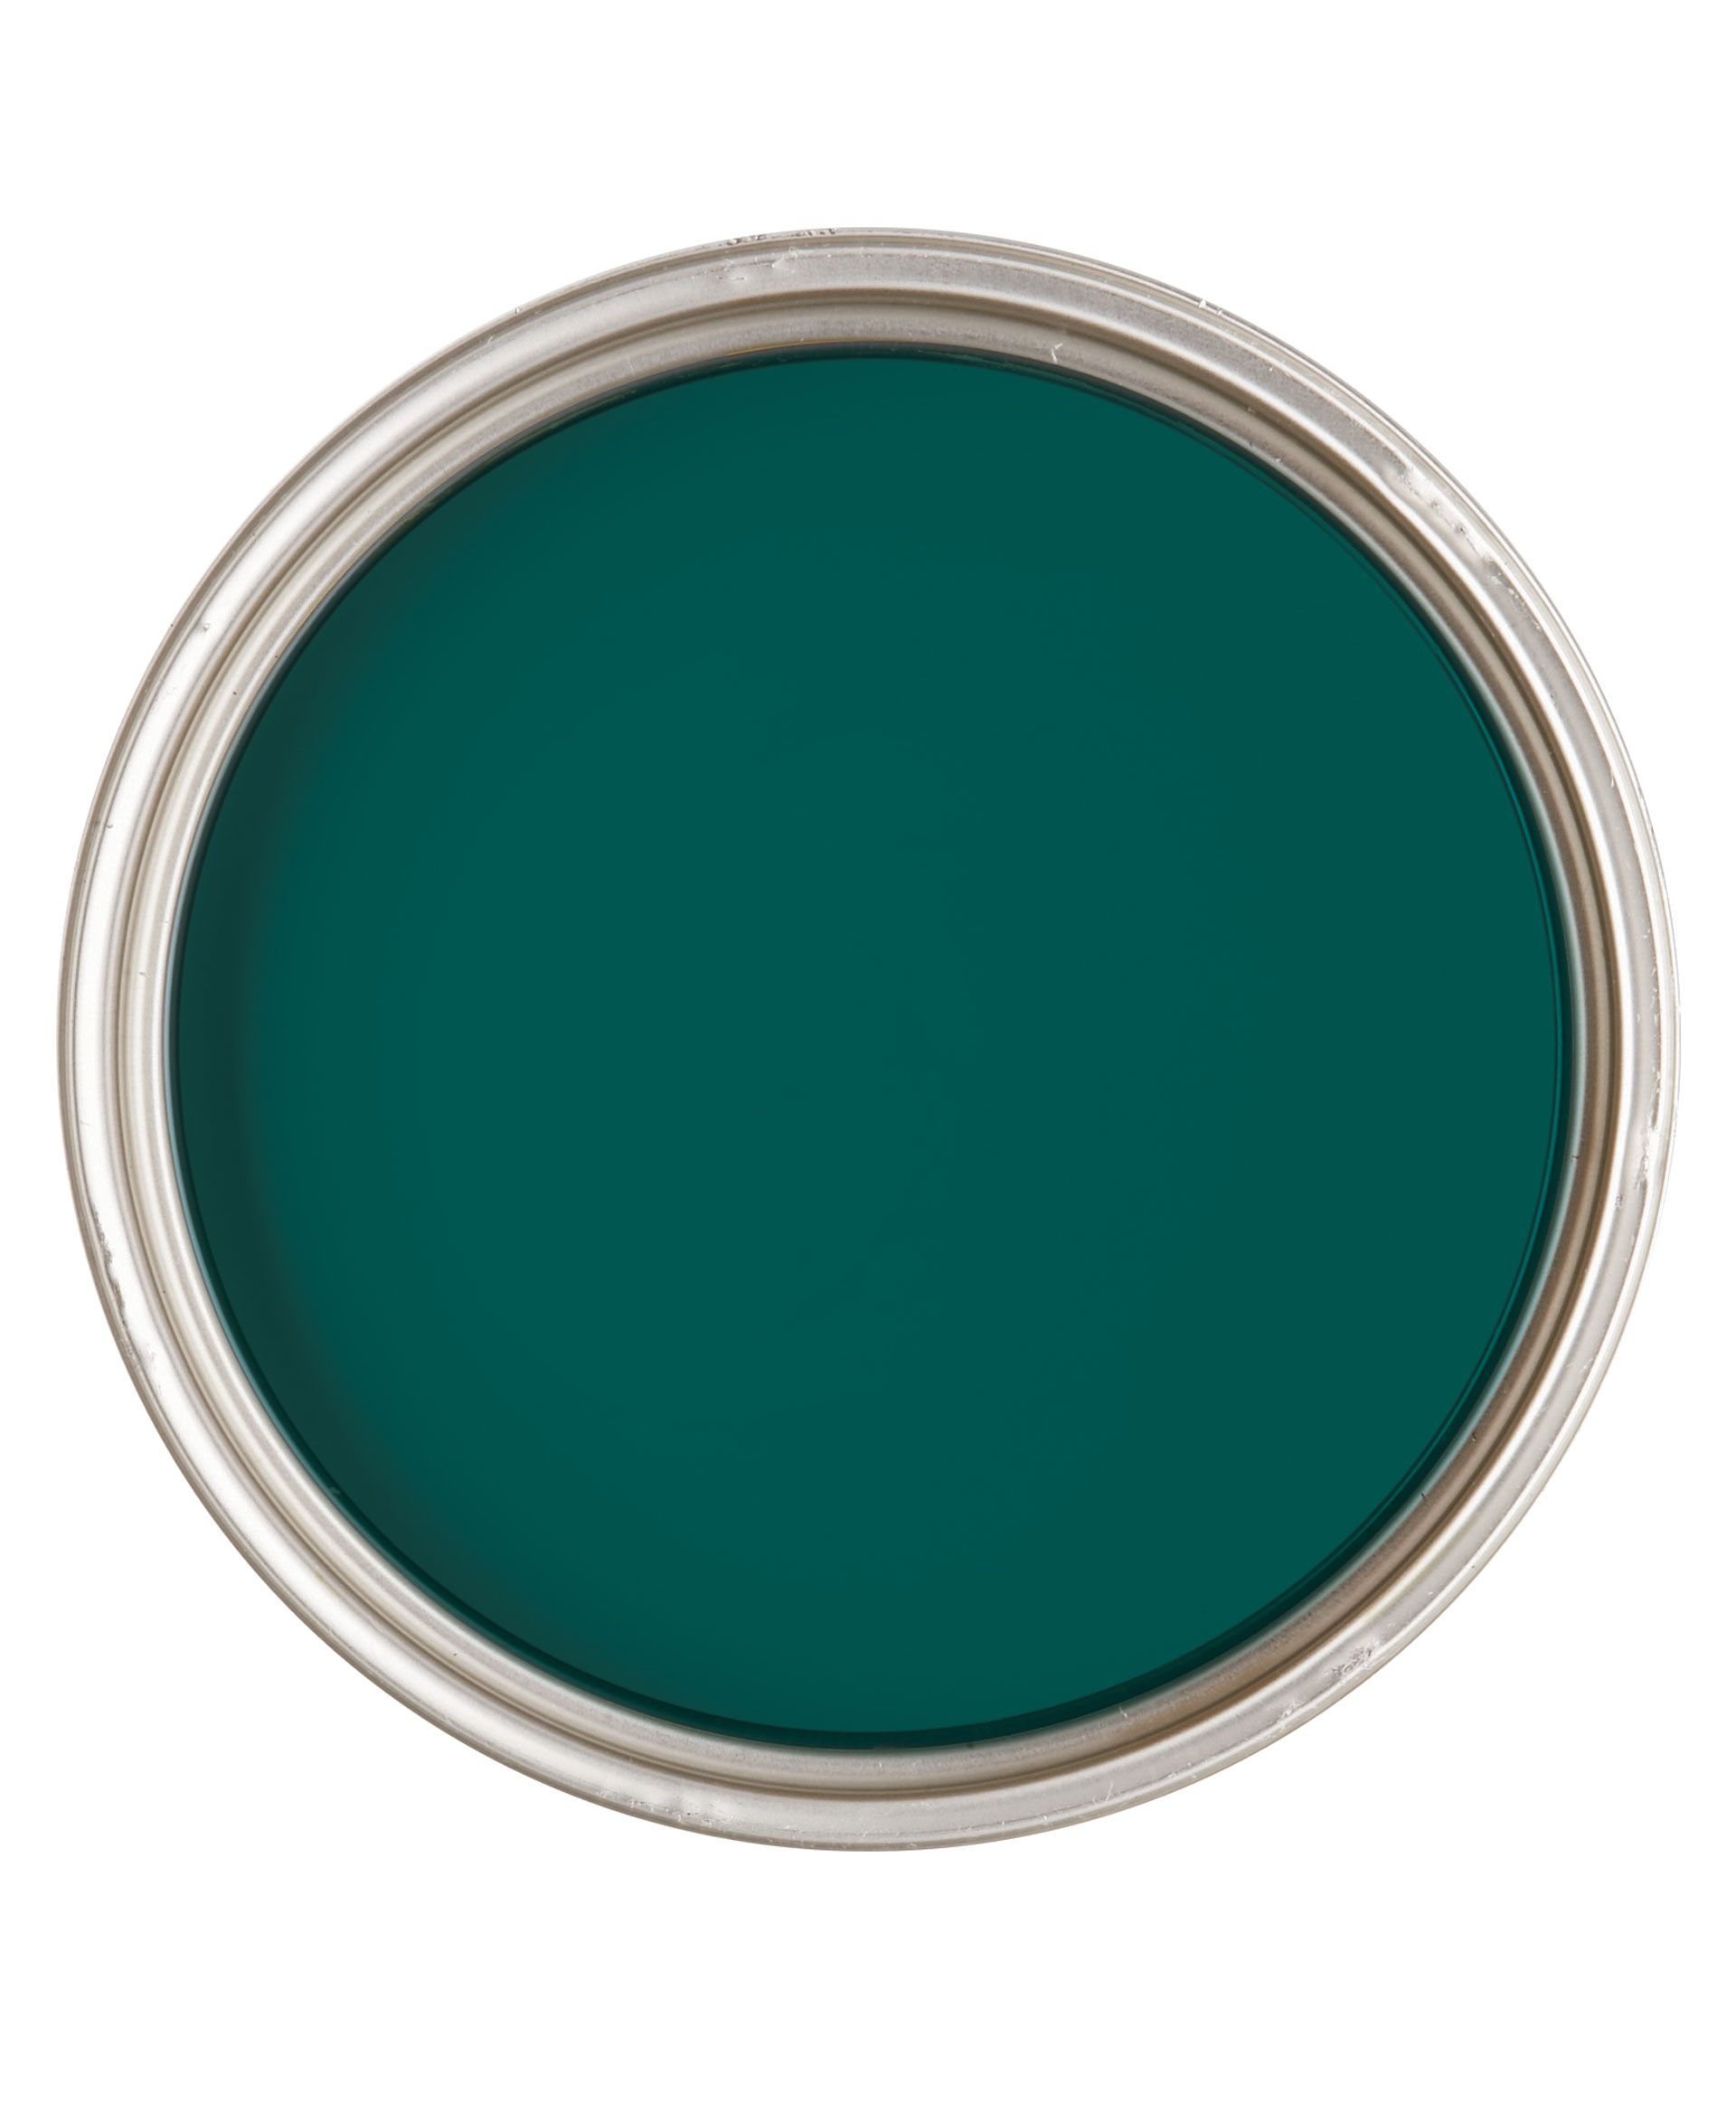 Benjamin Moore Paint In Beau Green 2054 Colourful